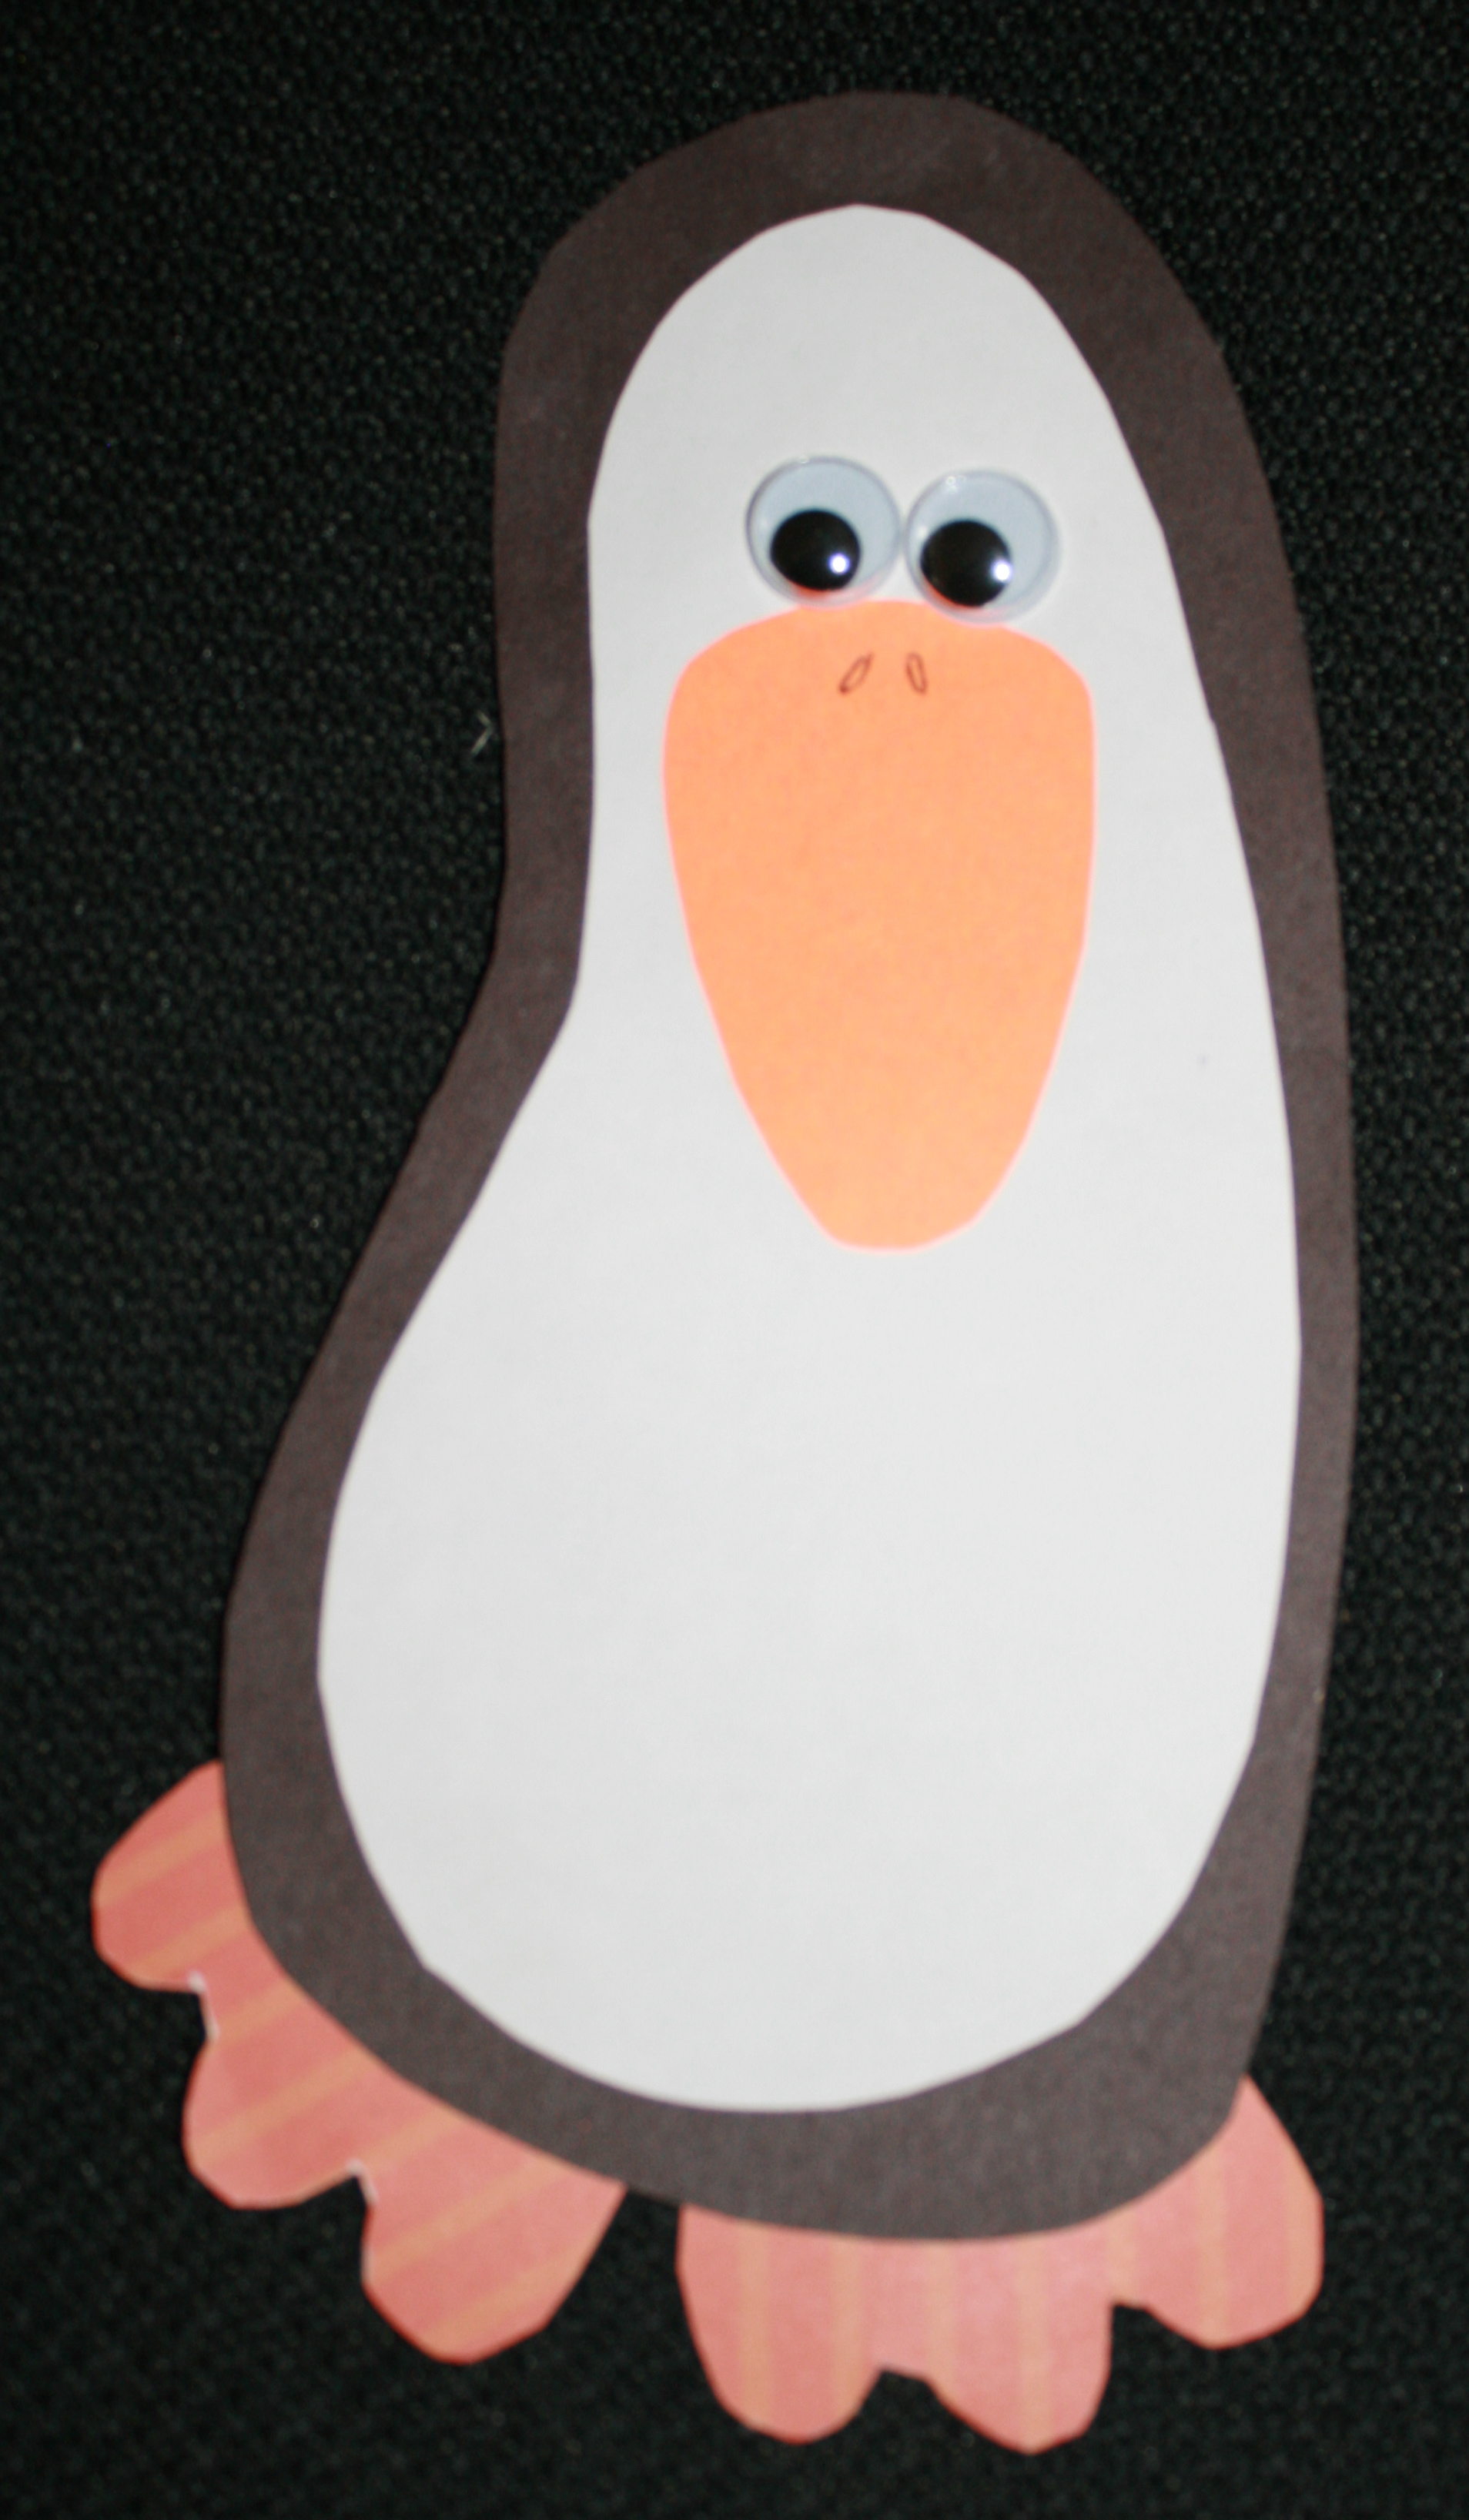 penguin activities, free Common Core lessons for kindergarten, free common core lessons for 1st grade, penguin lessons, 2D shape lessons, shape booklet, Silly Shaped Penguins, hexagon activities, shoe penguins, foot penguins, penguin booklet, shape booklet,pentagon activities, octagon activities,